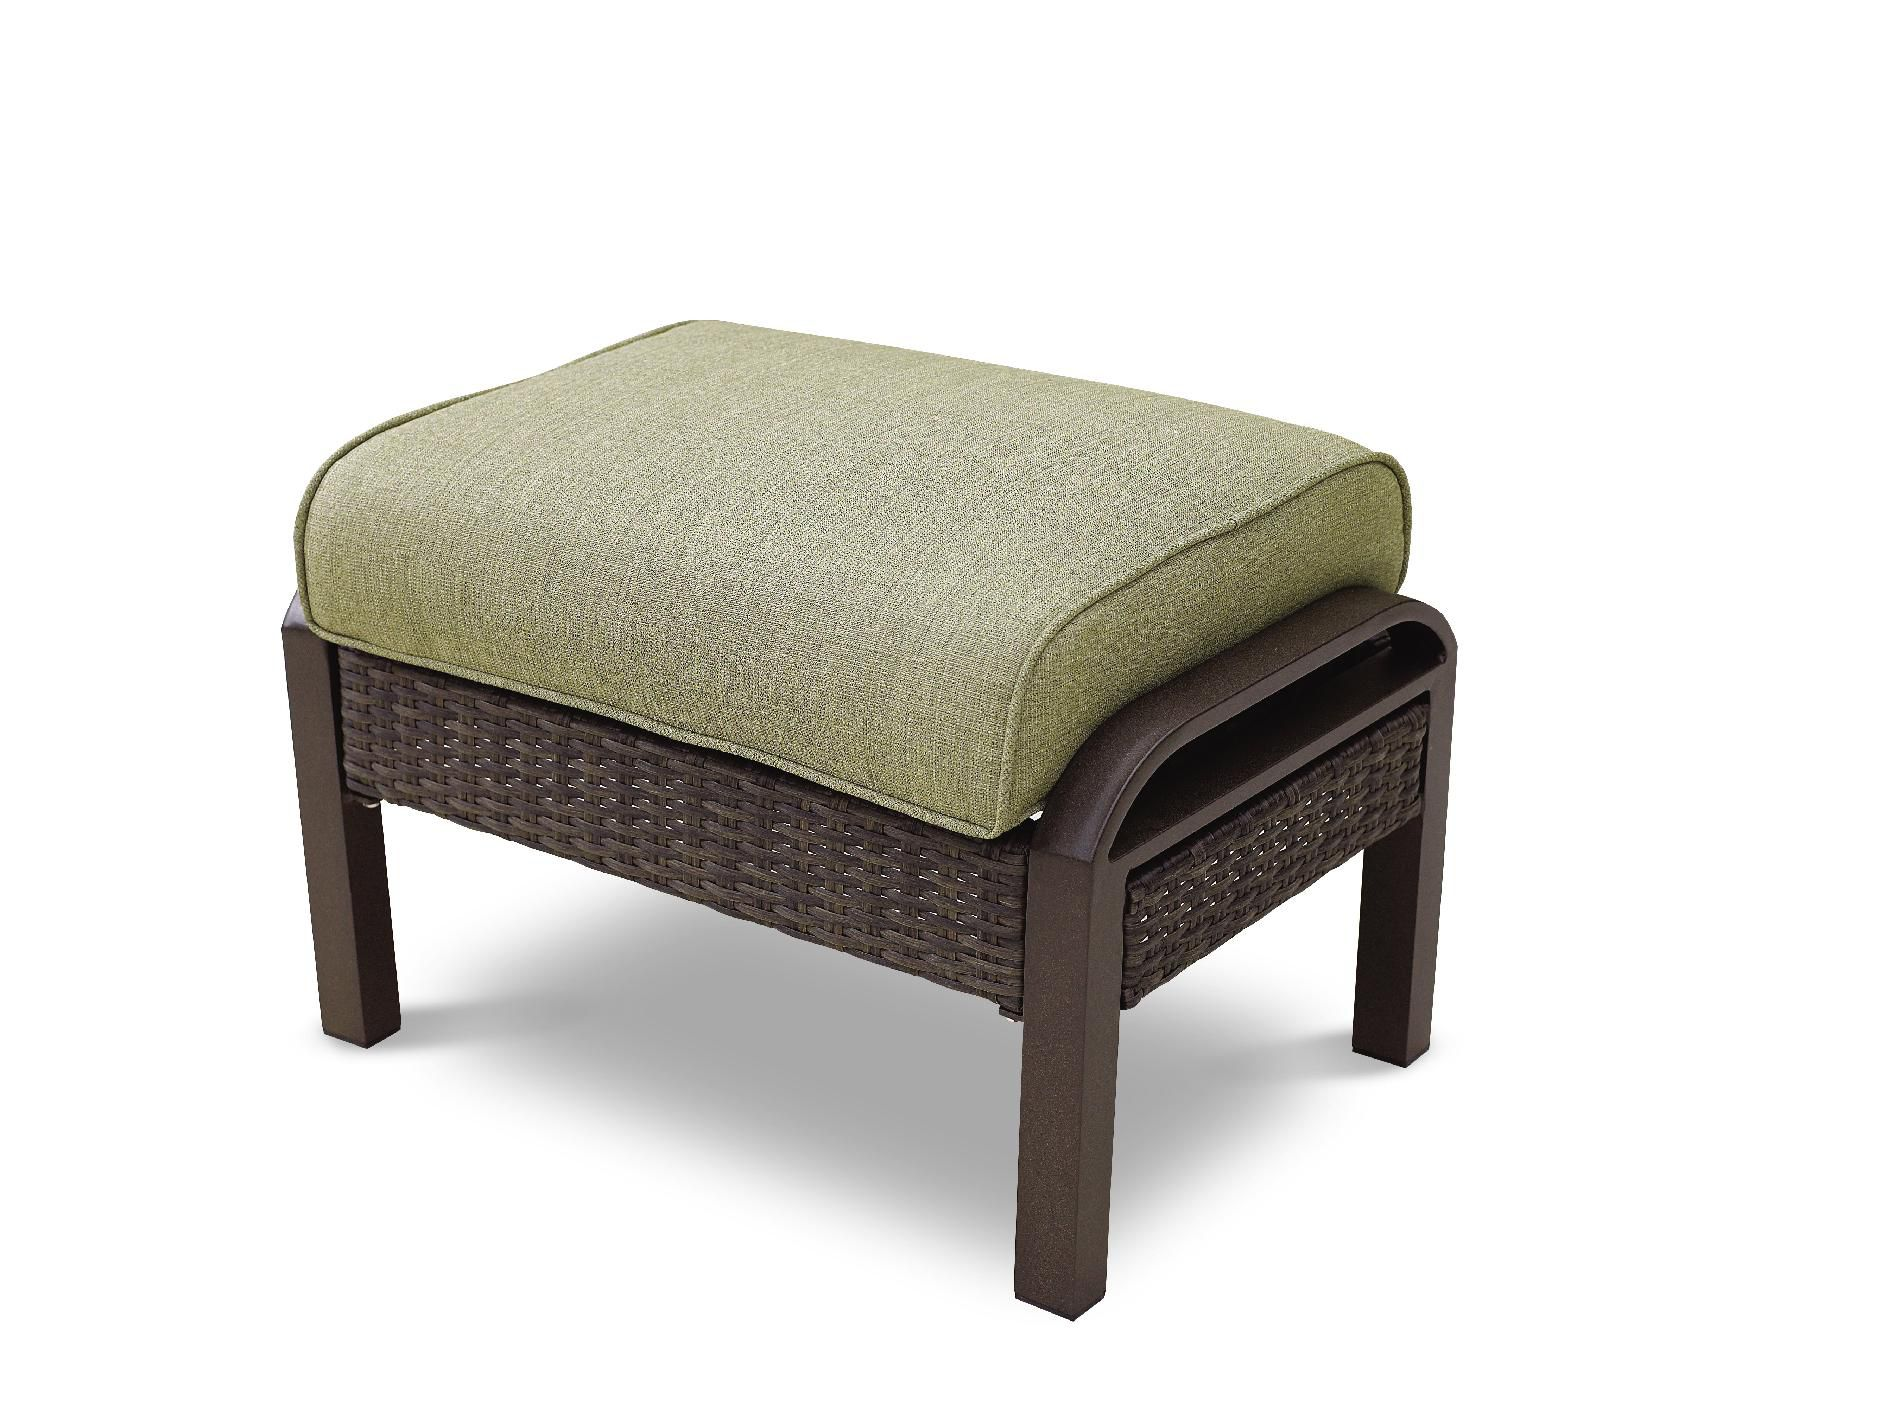 La-Z-Boy Outdoor Peyton 2 Pk. Ottoman *Limited Availability